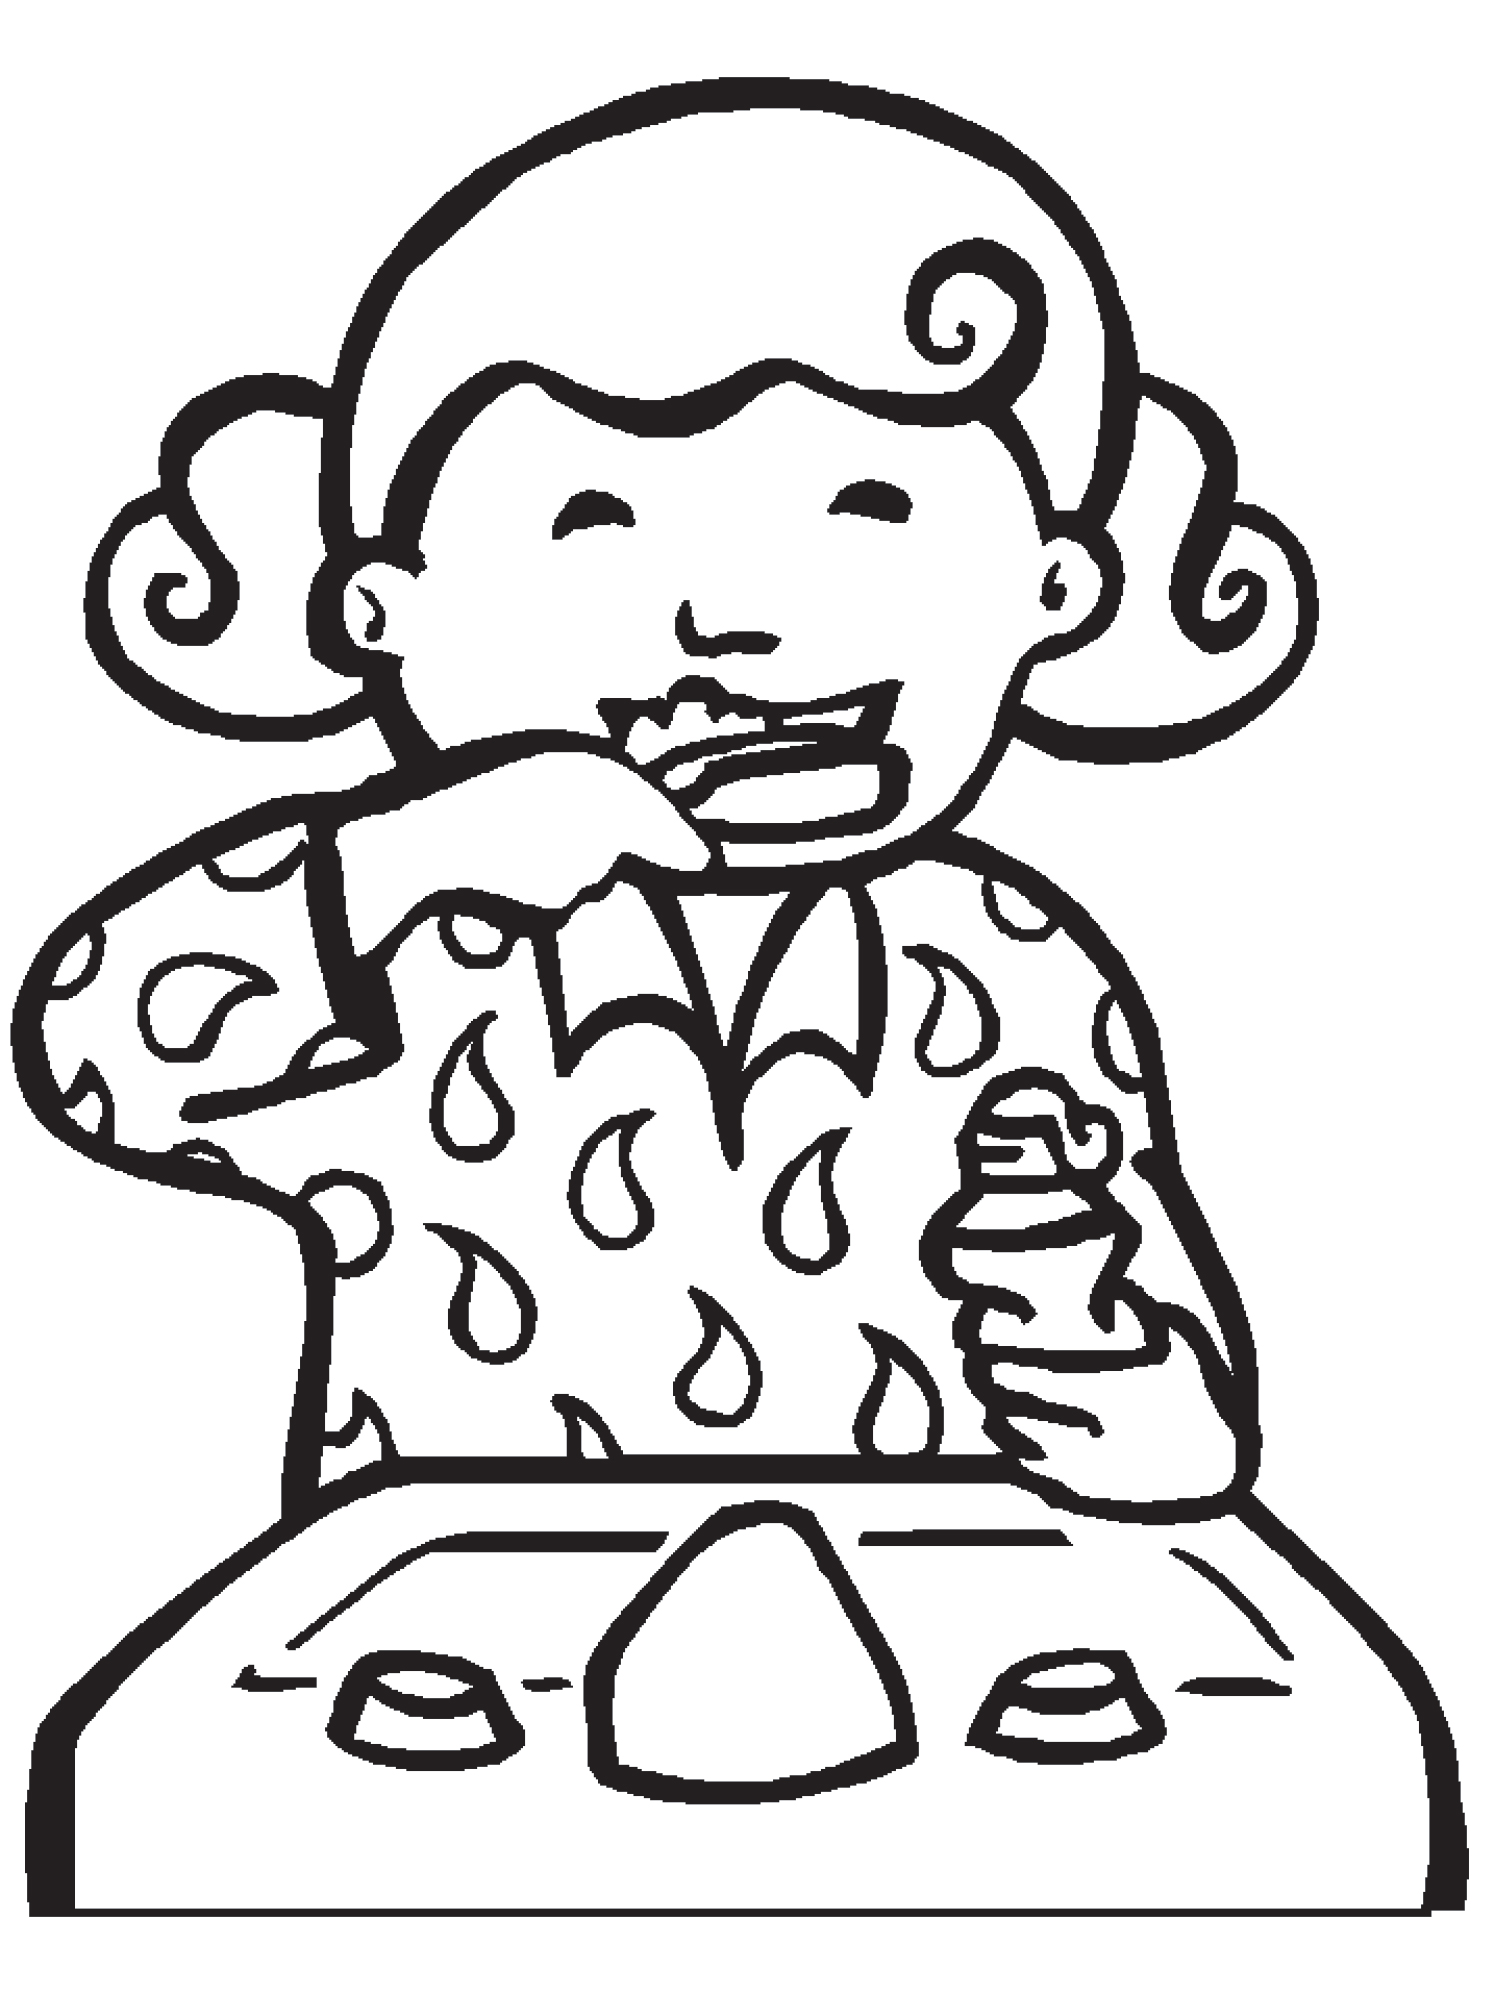 Brushing Teeth Clipart Black And White 8 Clipart Station